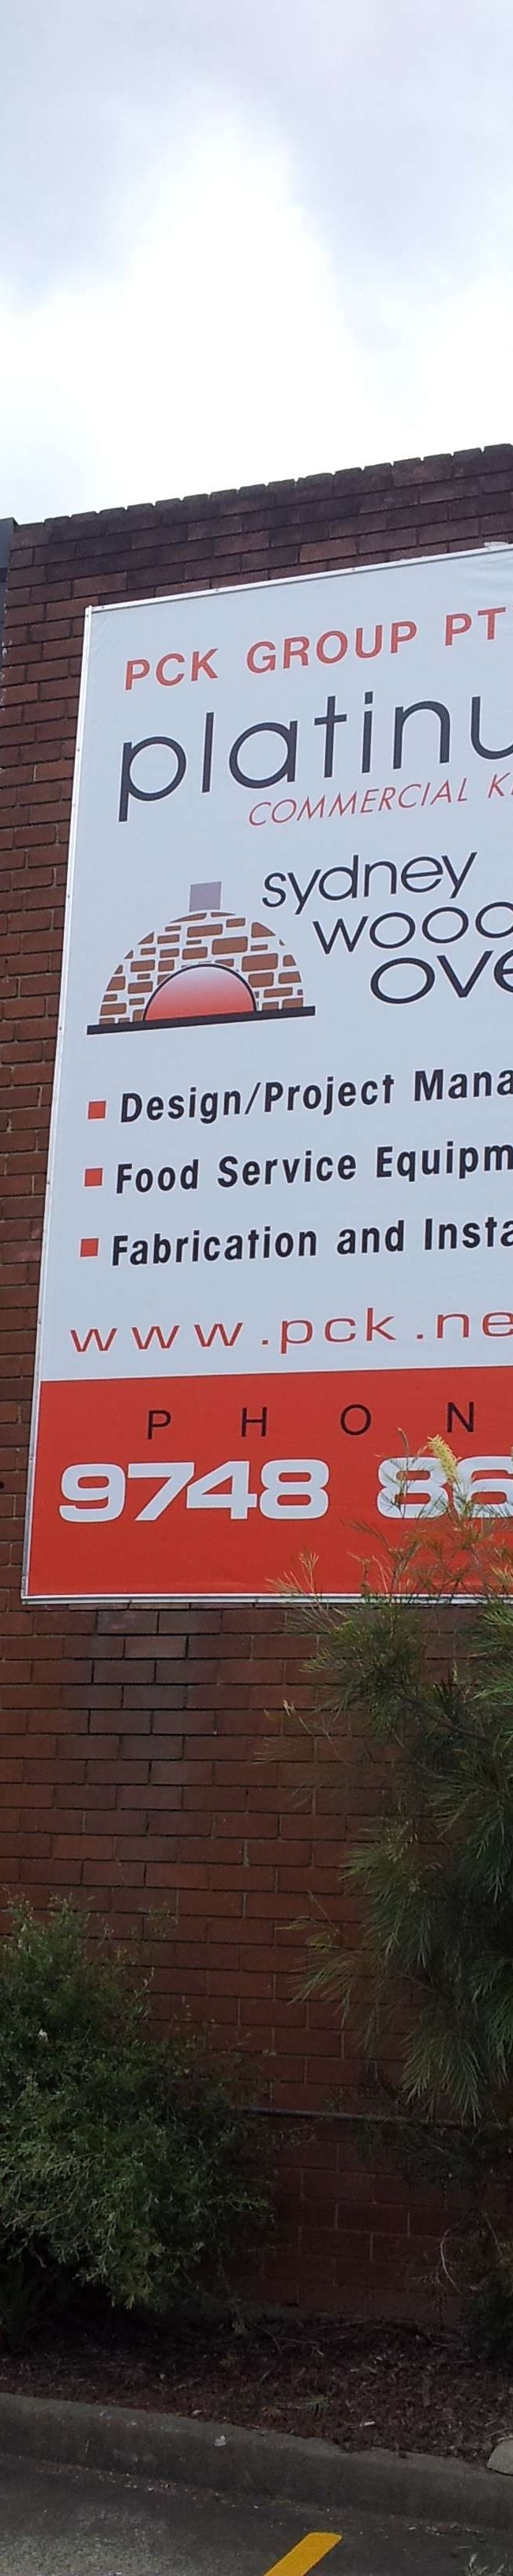 Platinum Kitchens Large printed Banner on external wall